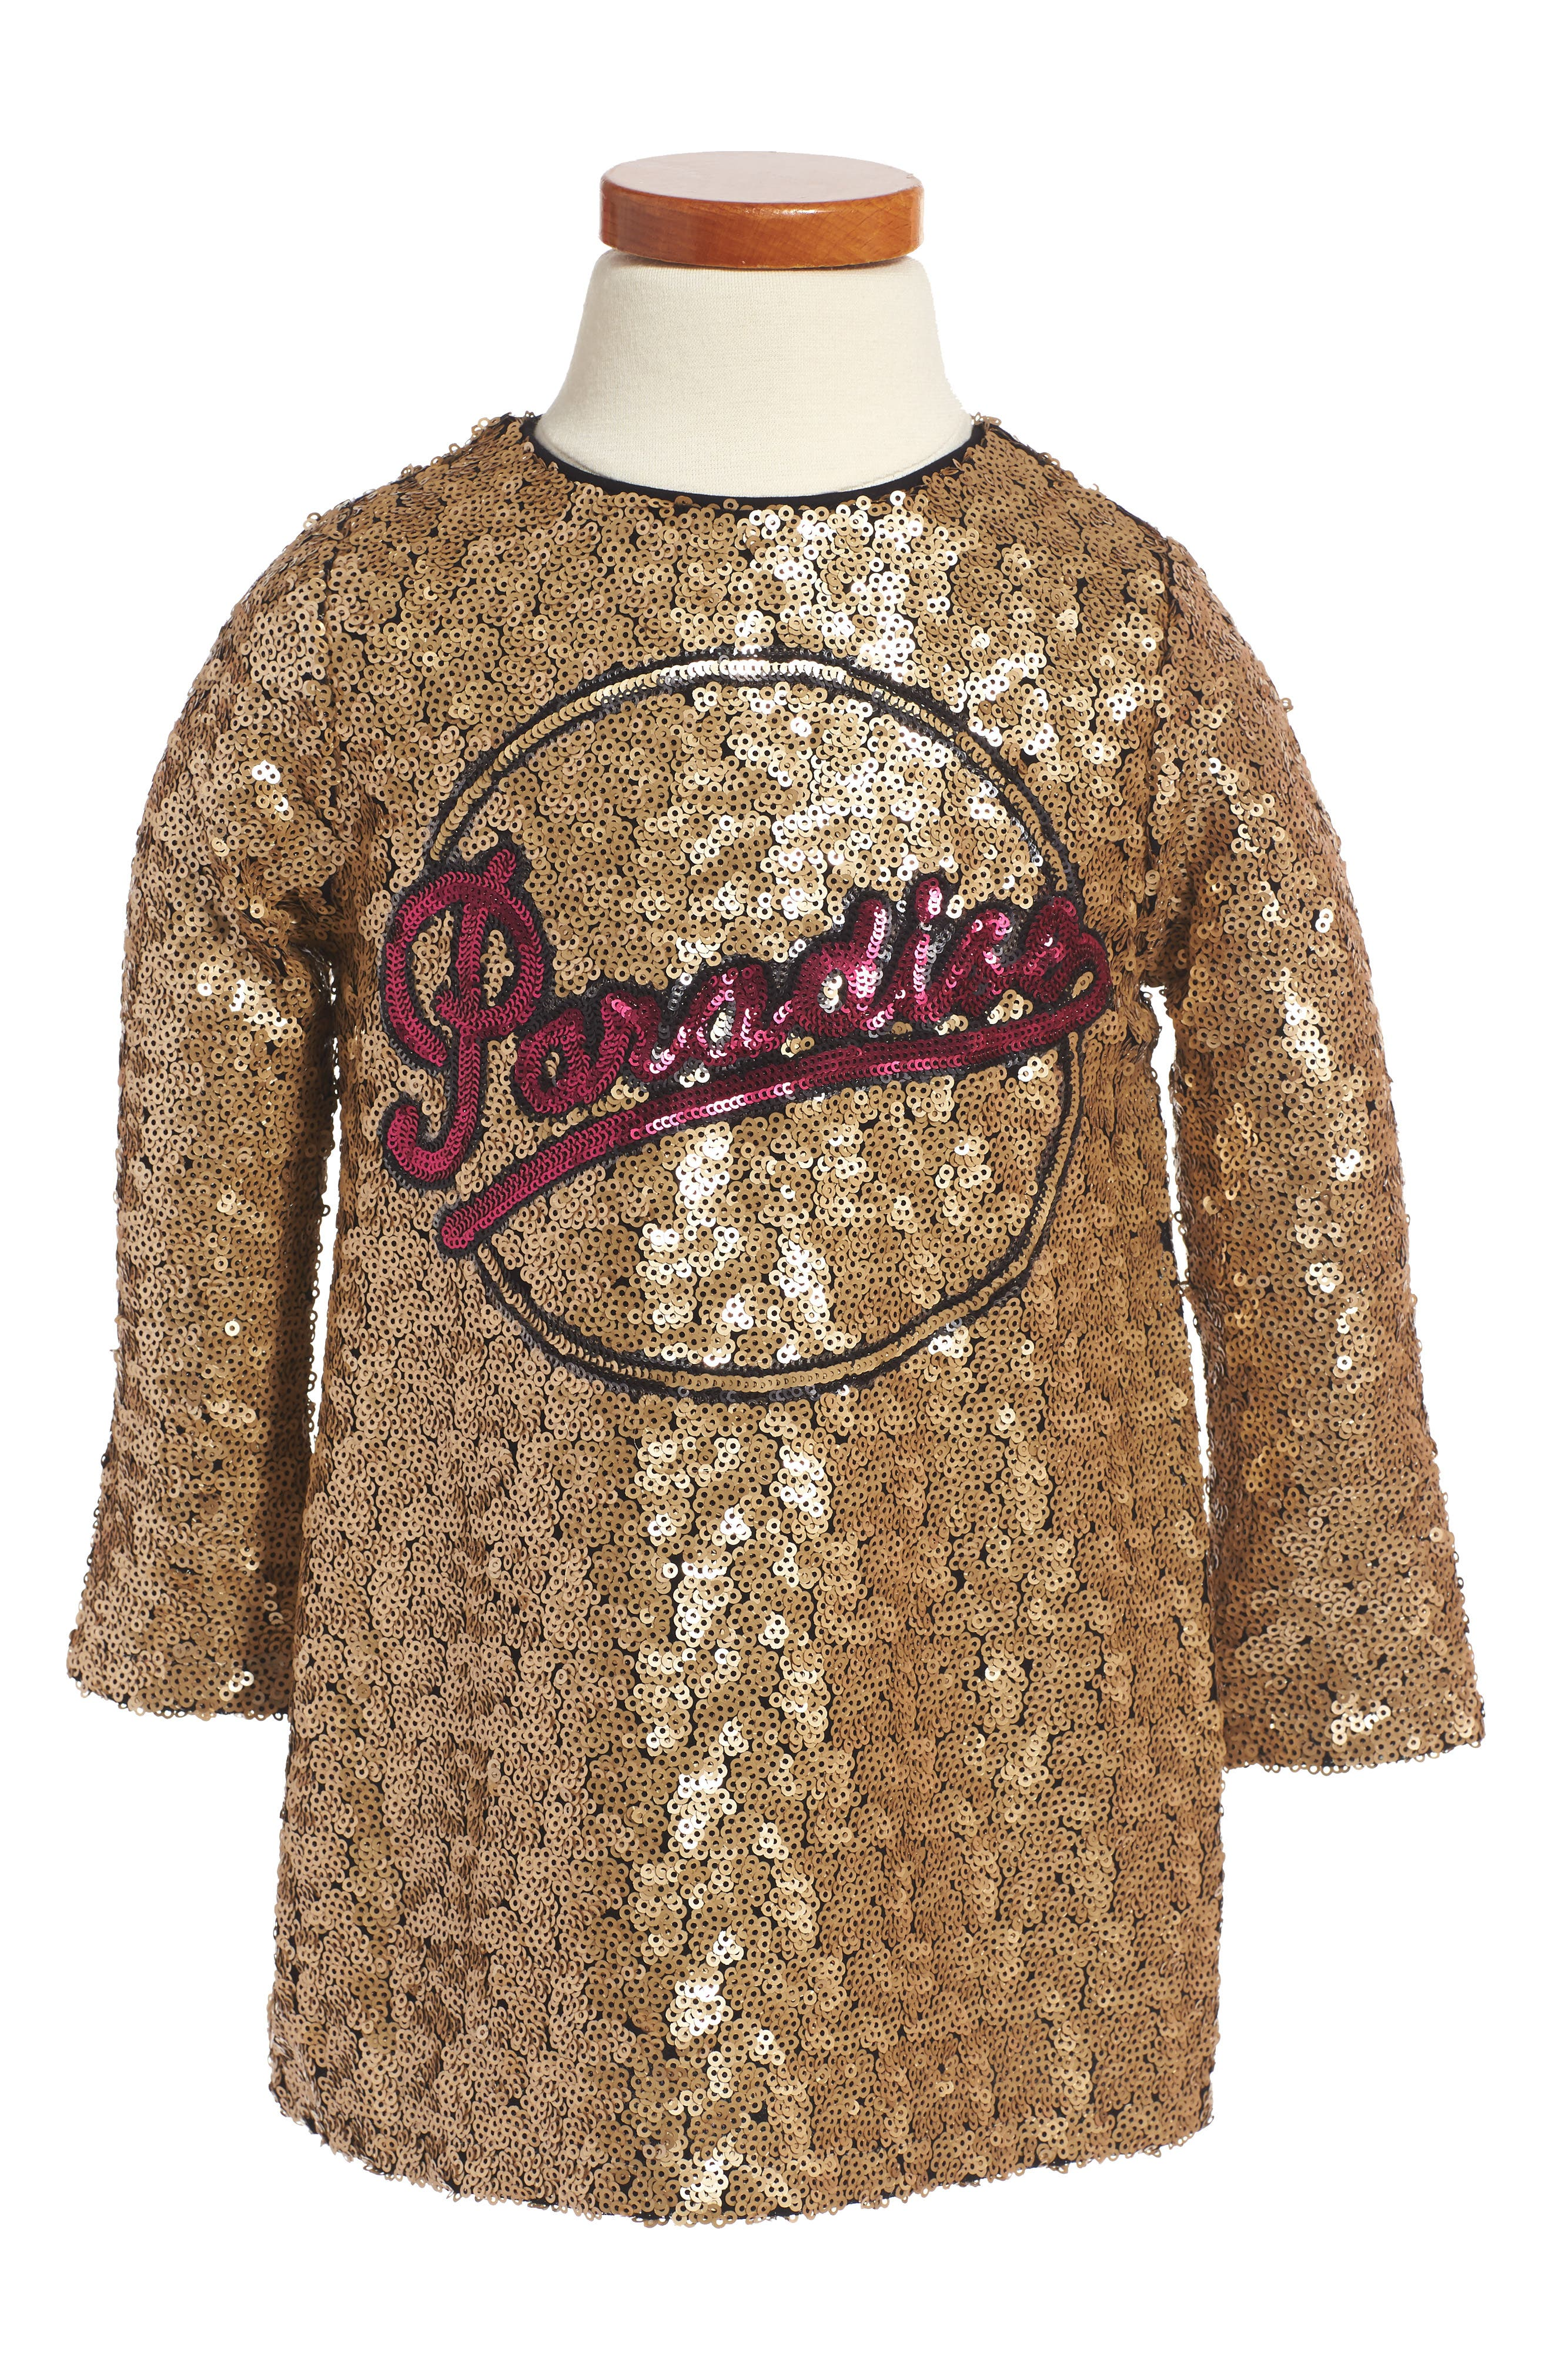 Paradise Sequin Shift Dress,                         Main,                         color, Gold Yellow